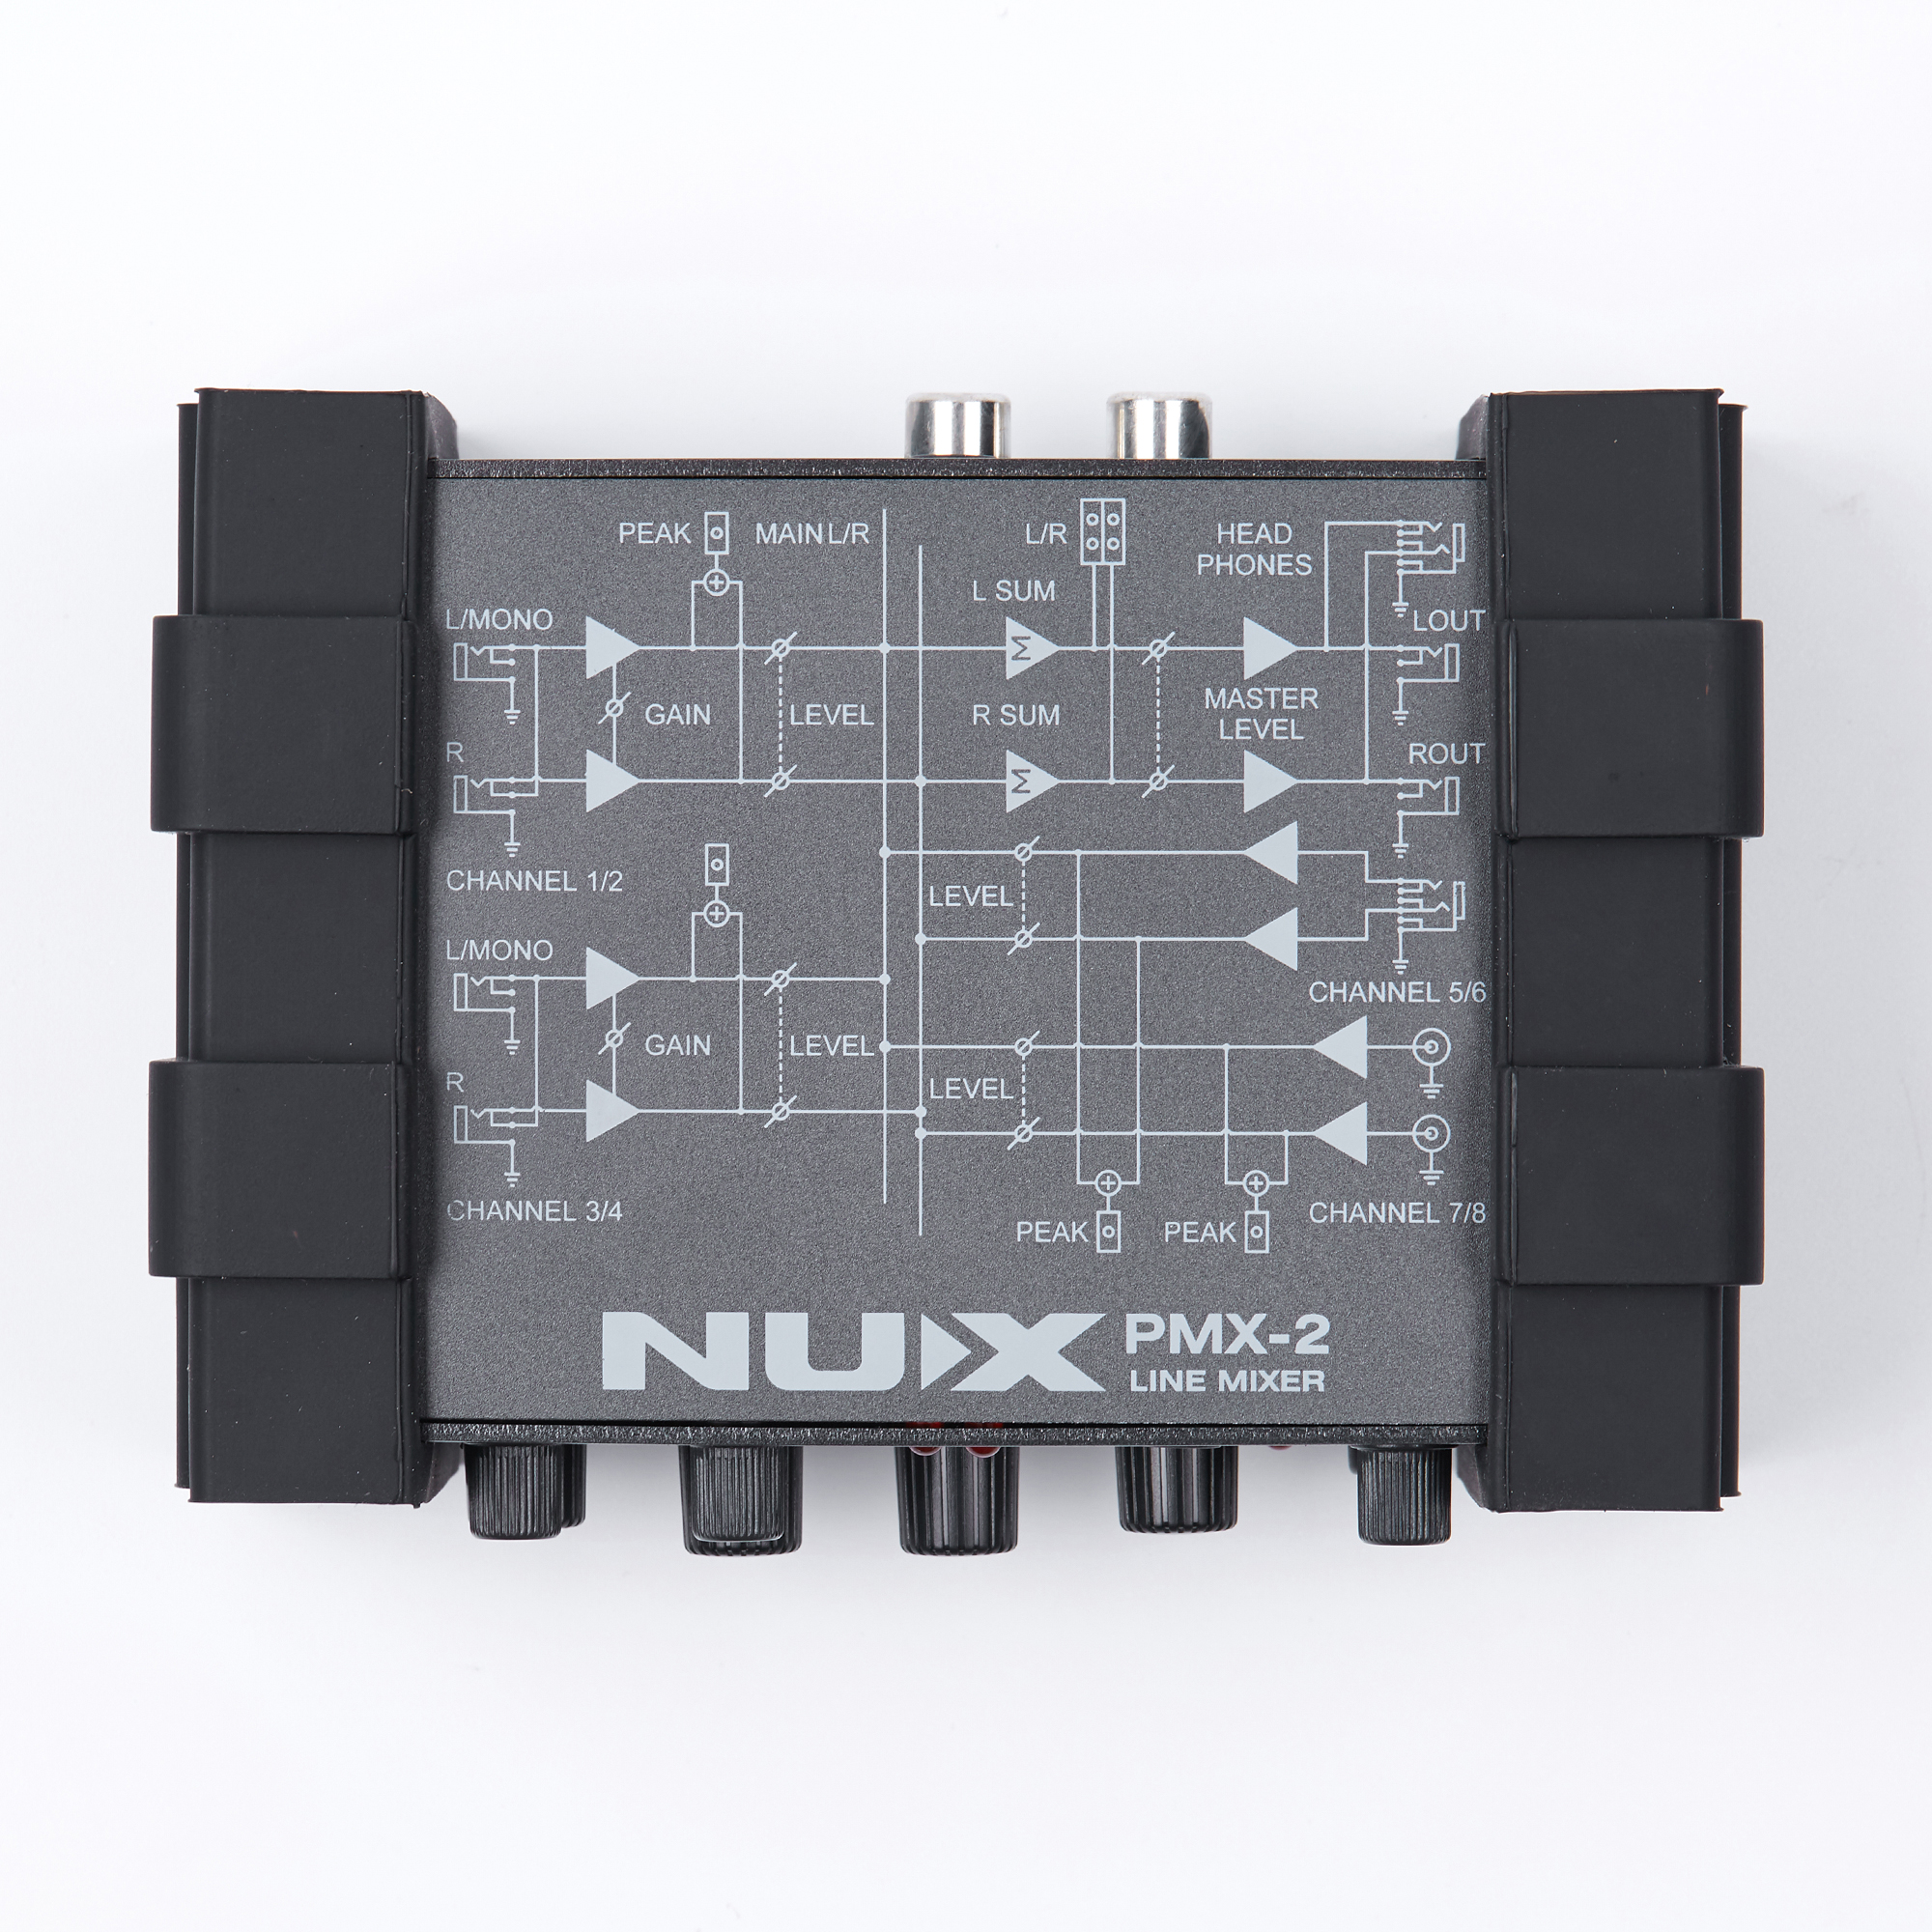 Gain Control 8 Inputs and 2 Outputs NUX PMX-2 Multi-Channel Mini Mixer 30 Musical Instruments Accessories for Guitar Bass Player конверты для малышей leader kids leader kids конверт прогулочный беж